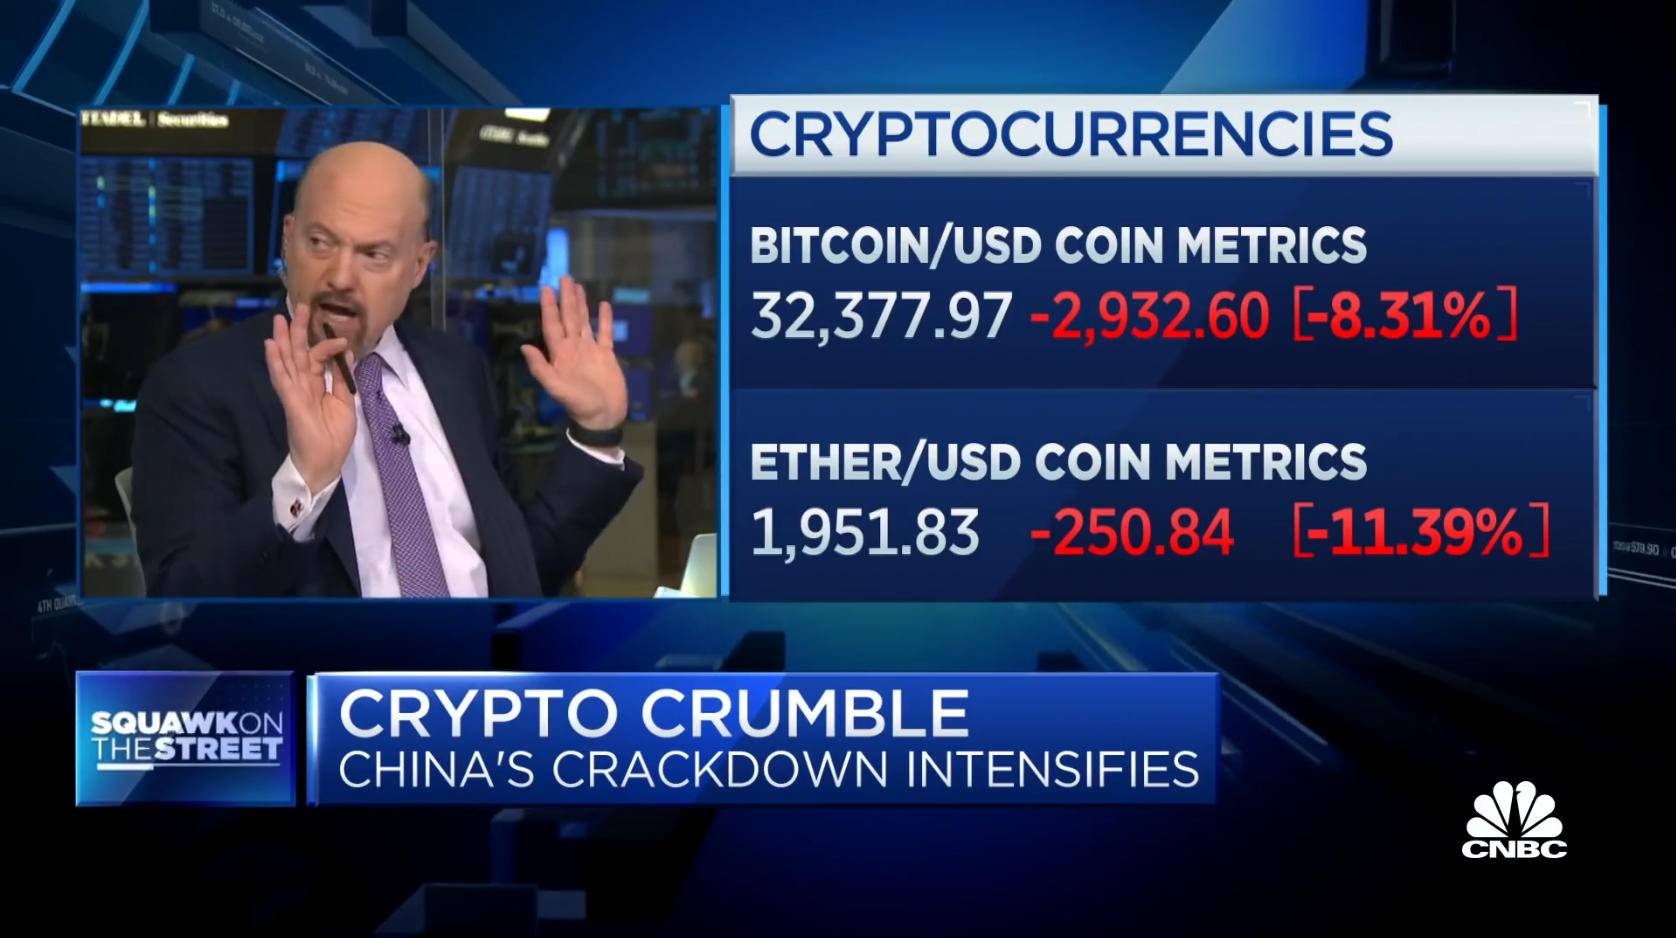 jim cramer is begging his audience to sell cryptos